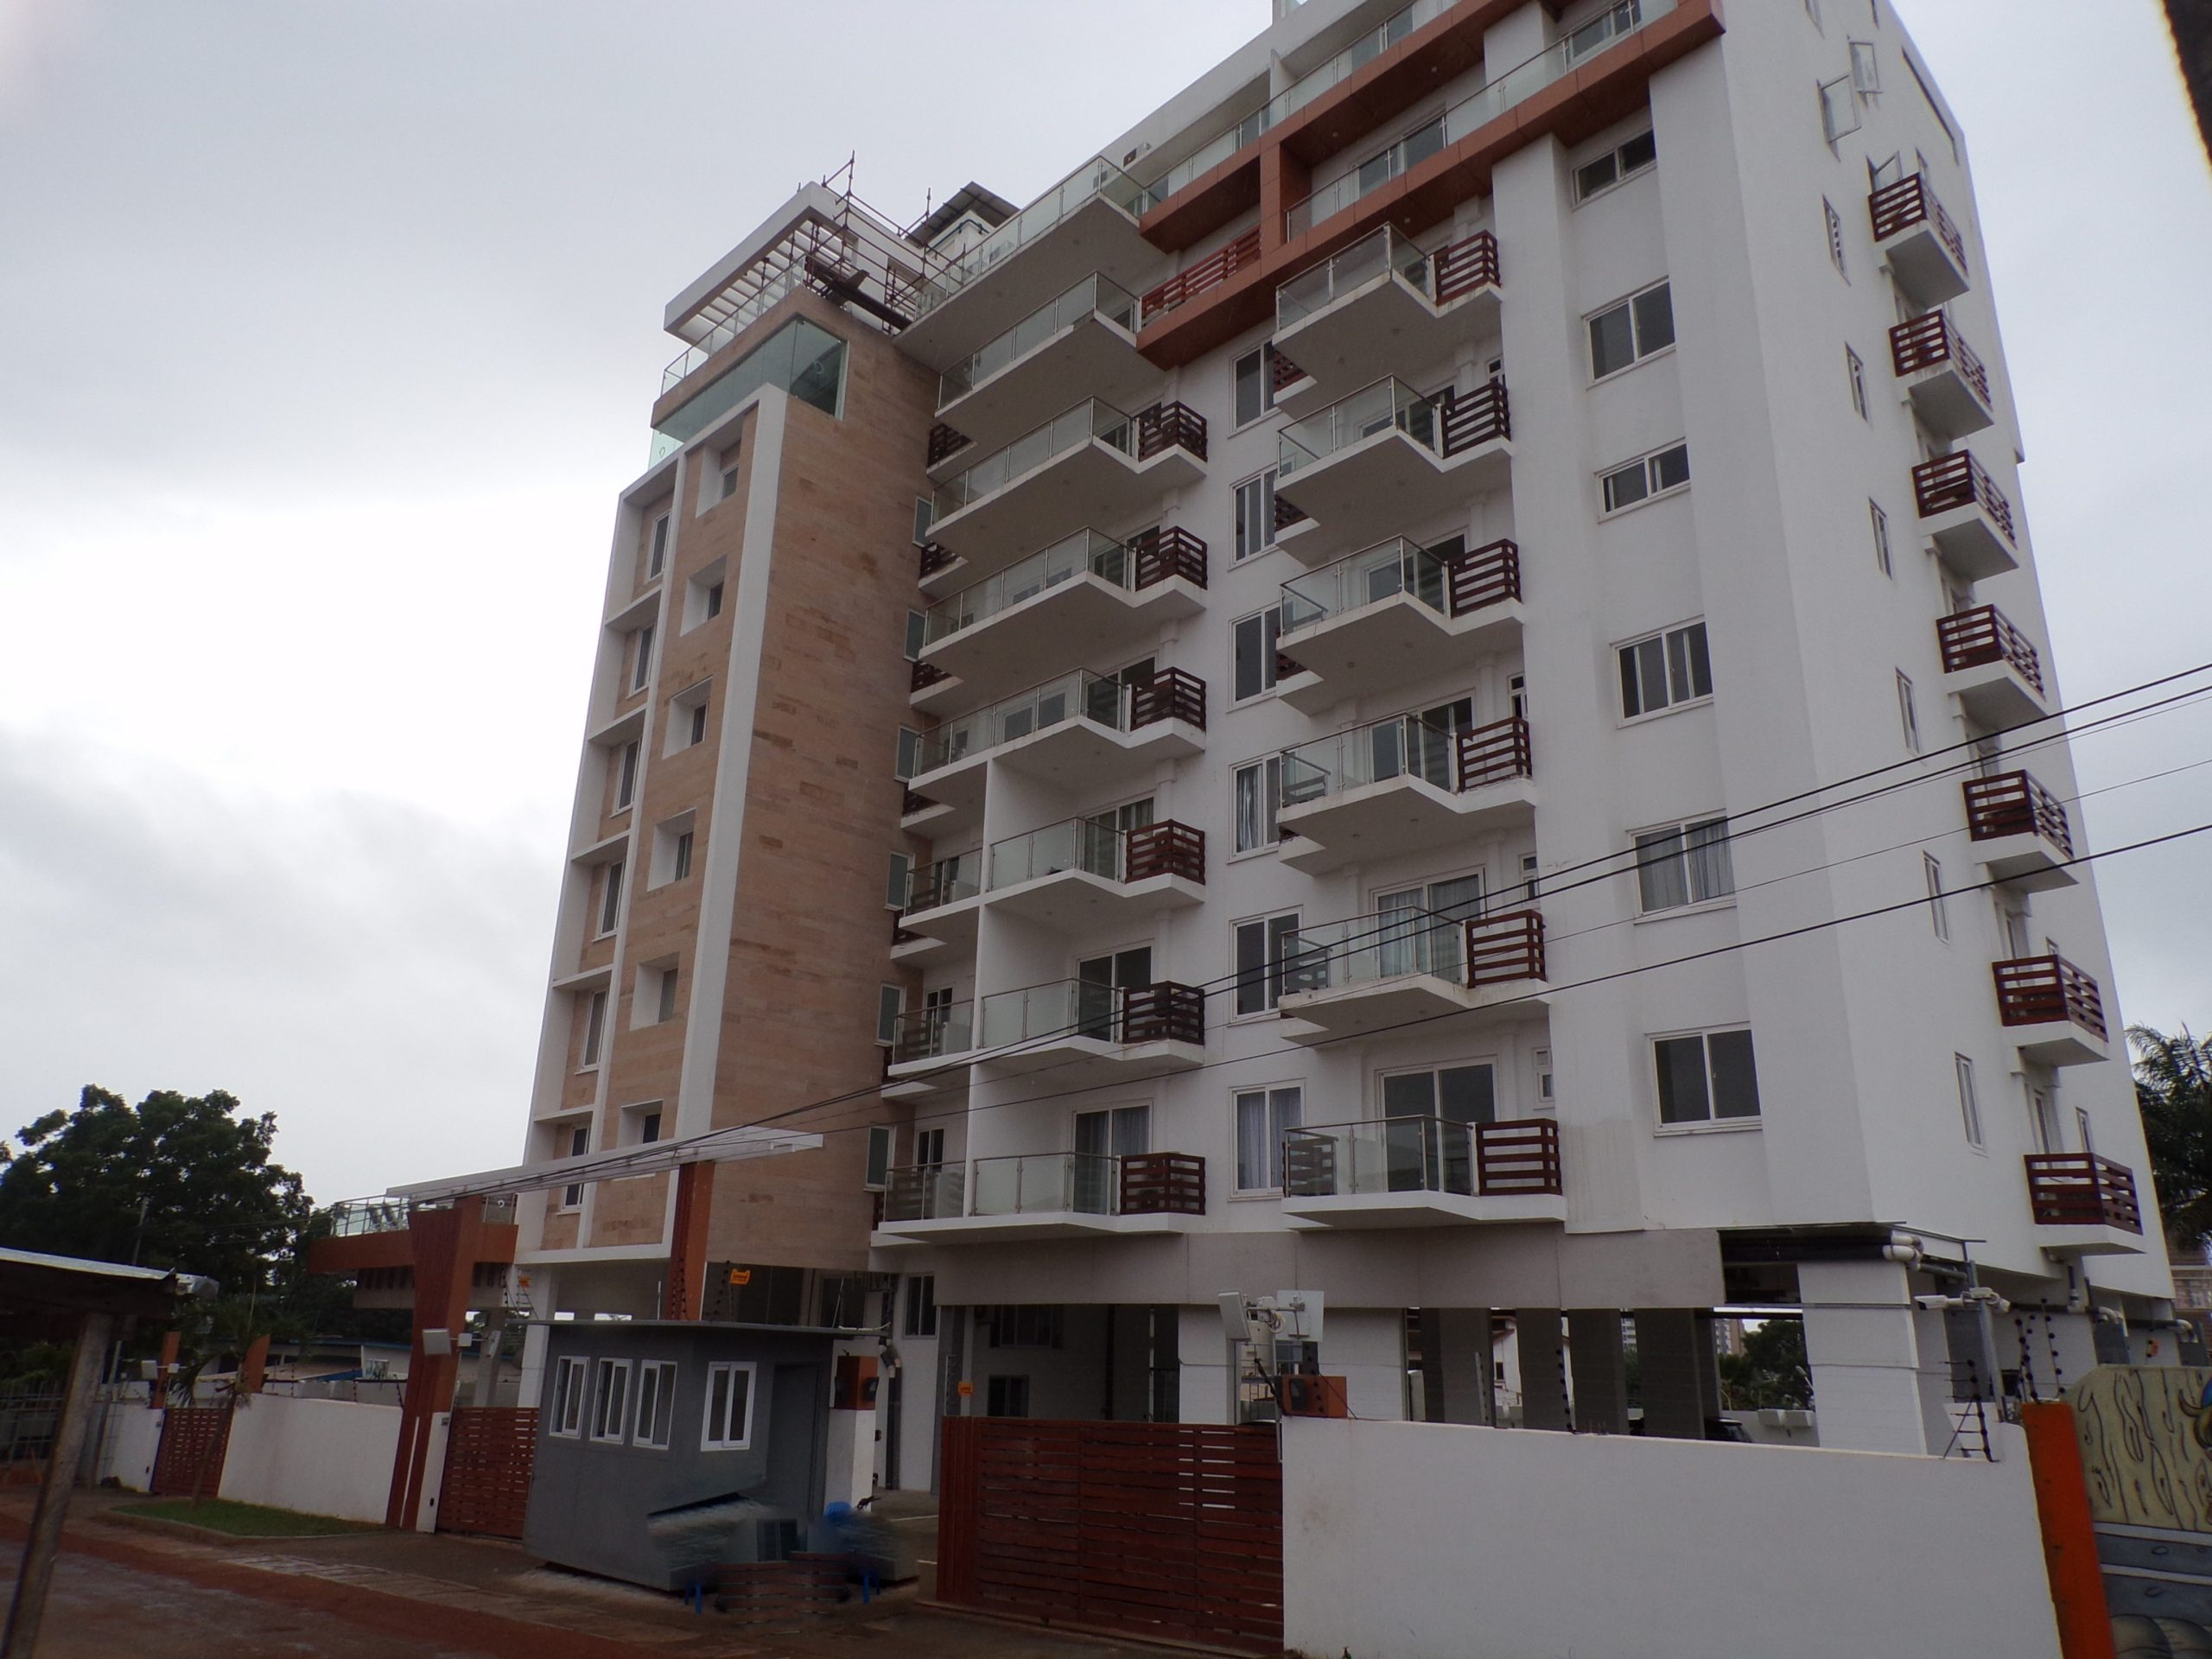 1 bedroom luxury unfurnished apartment for Rent in Ringway Estates